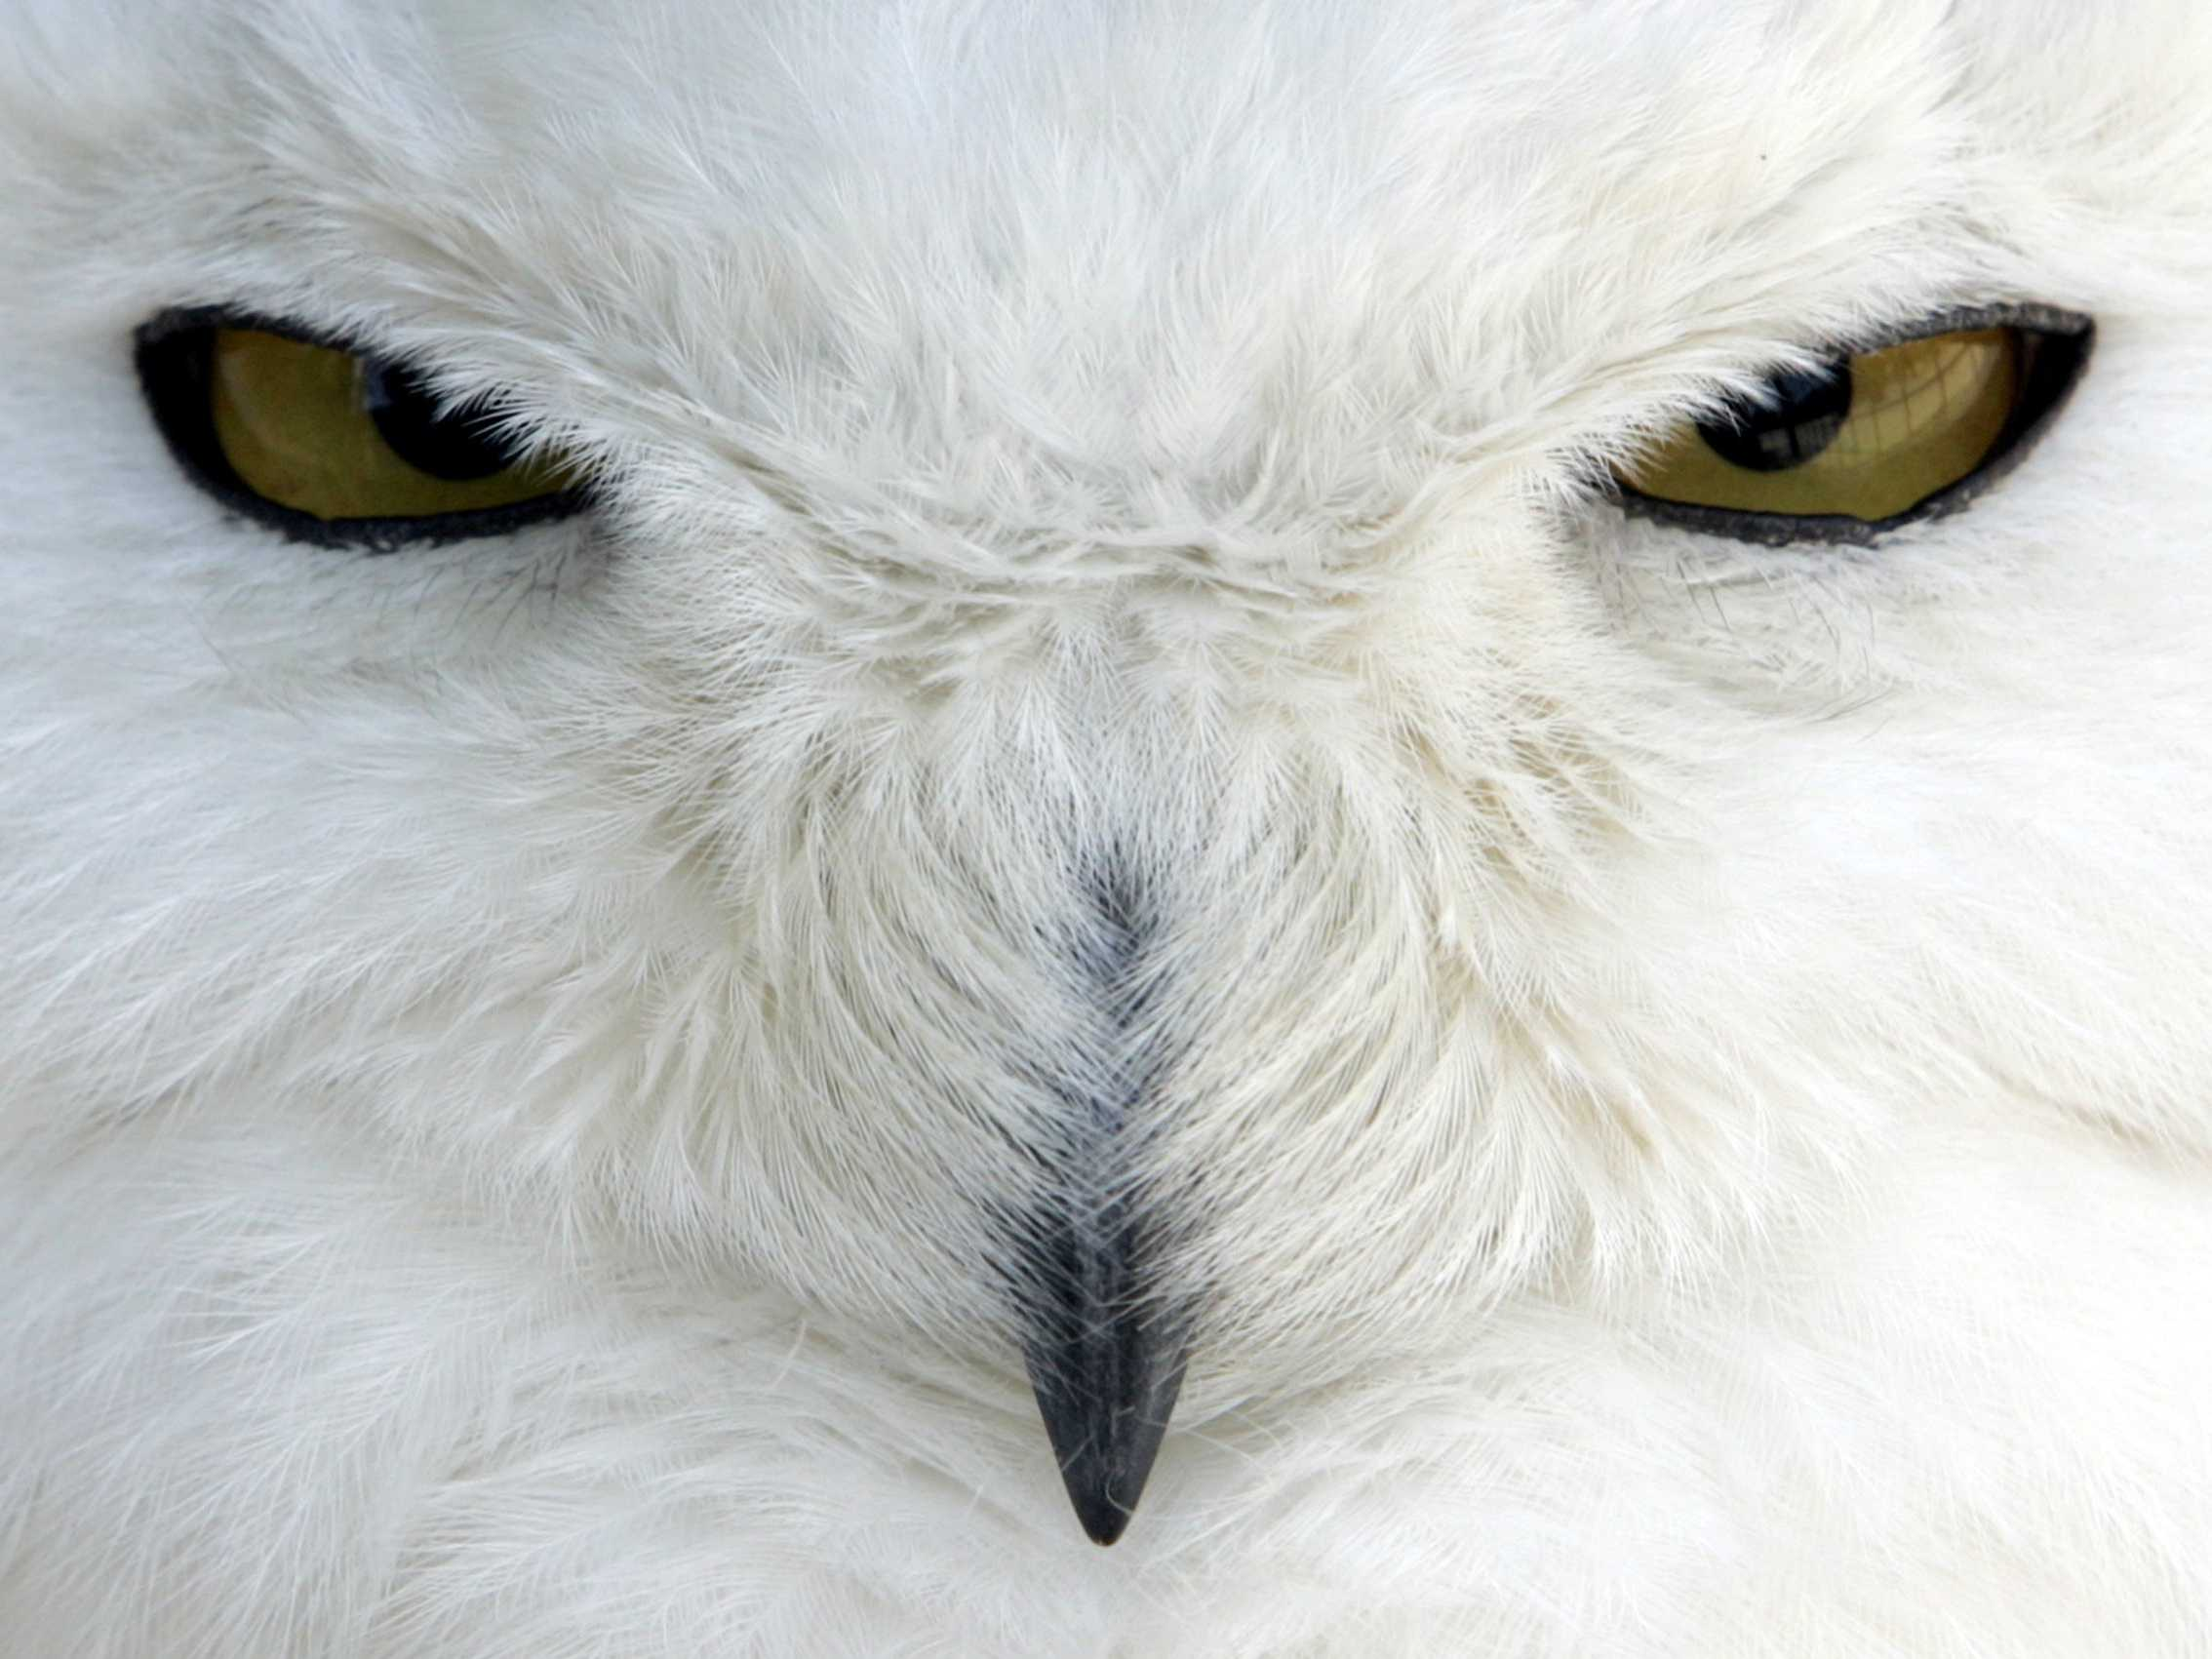 JFK Airport Shooting Snowy Owls On Sight - Business Insider